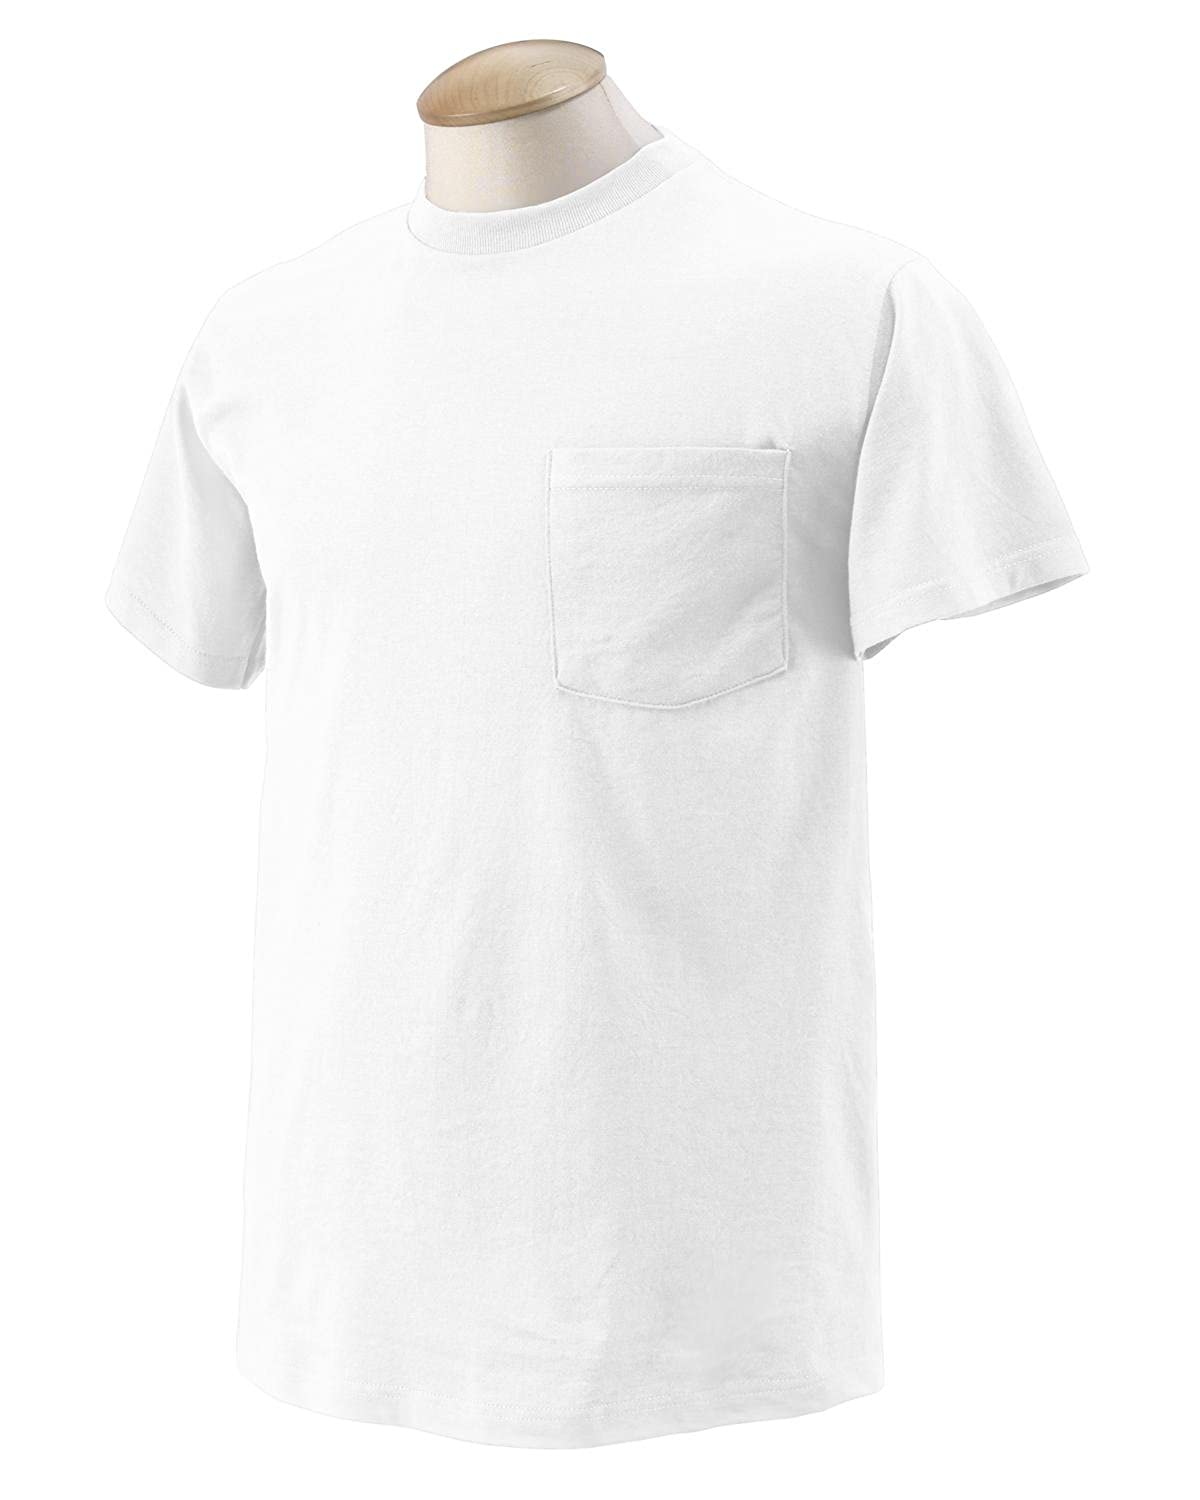 Fruit of the Loom Heavy Cotton Pocket T-Shirt, White